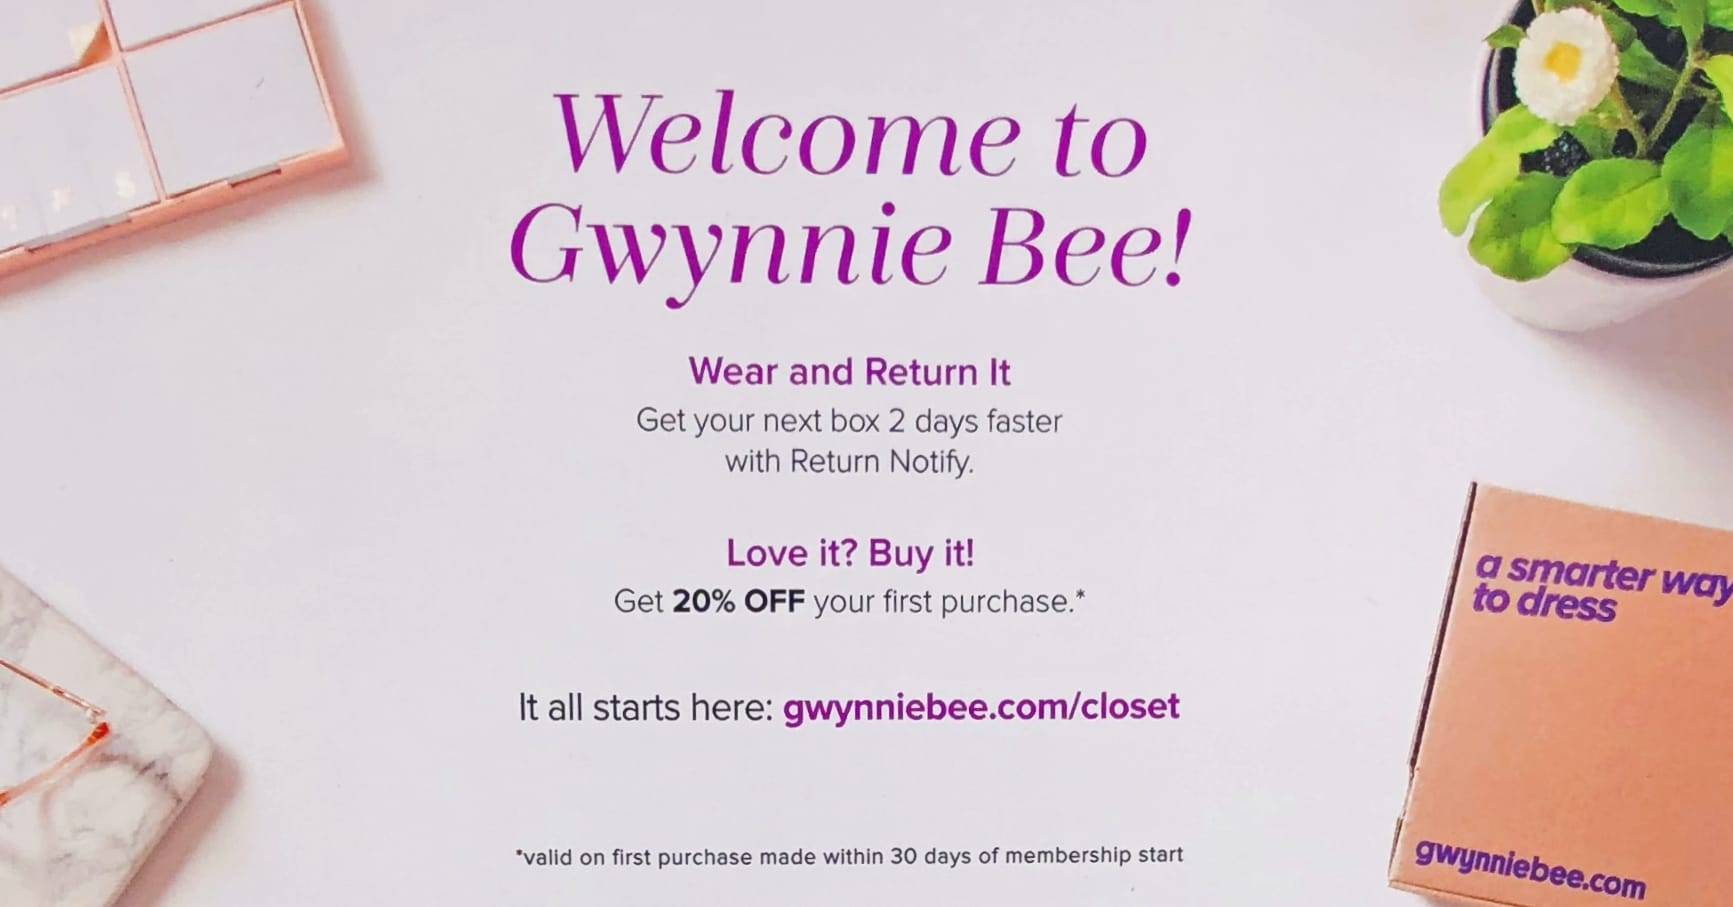 Gwynnie Bee Reviews - Welcome